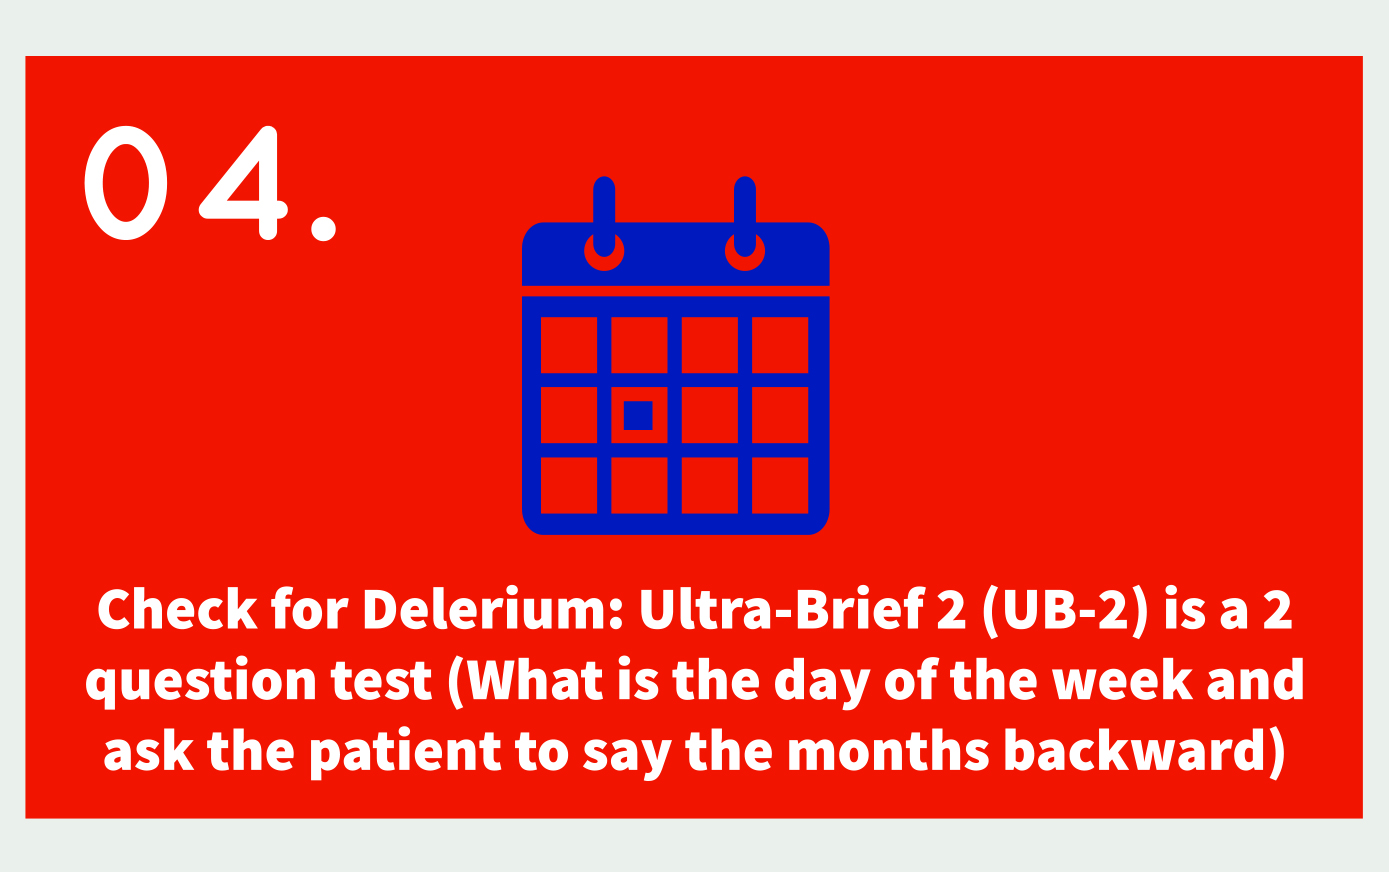 04. Icon: calendar Text: check for delerium: Ultra-Brief 2 (UB-2) is a 2 question test (What is the day of the week and ask the patient to say the months backward).